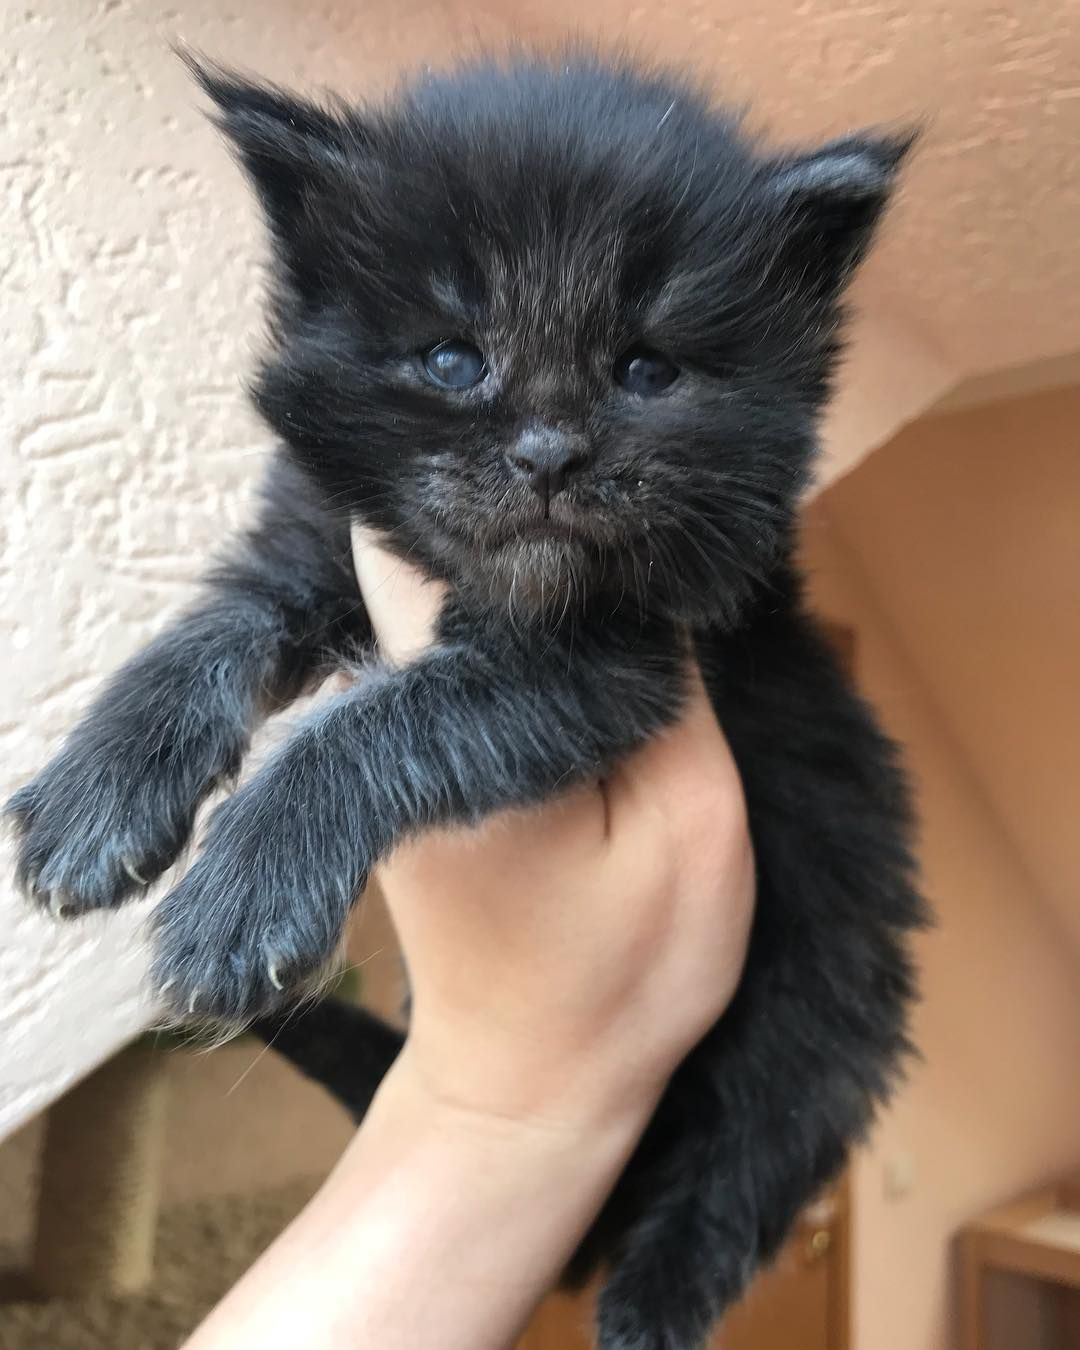 Black Smoke Boy Rembrandt With White Tip Of Tail 3 Weeks Old Pet Birds Kittens Cutest Cats And Kittens